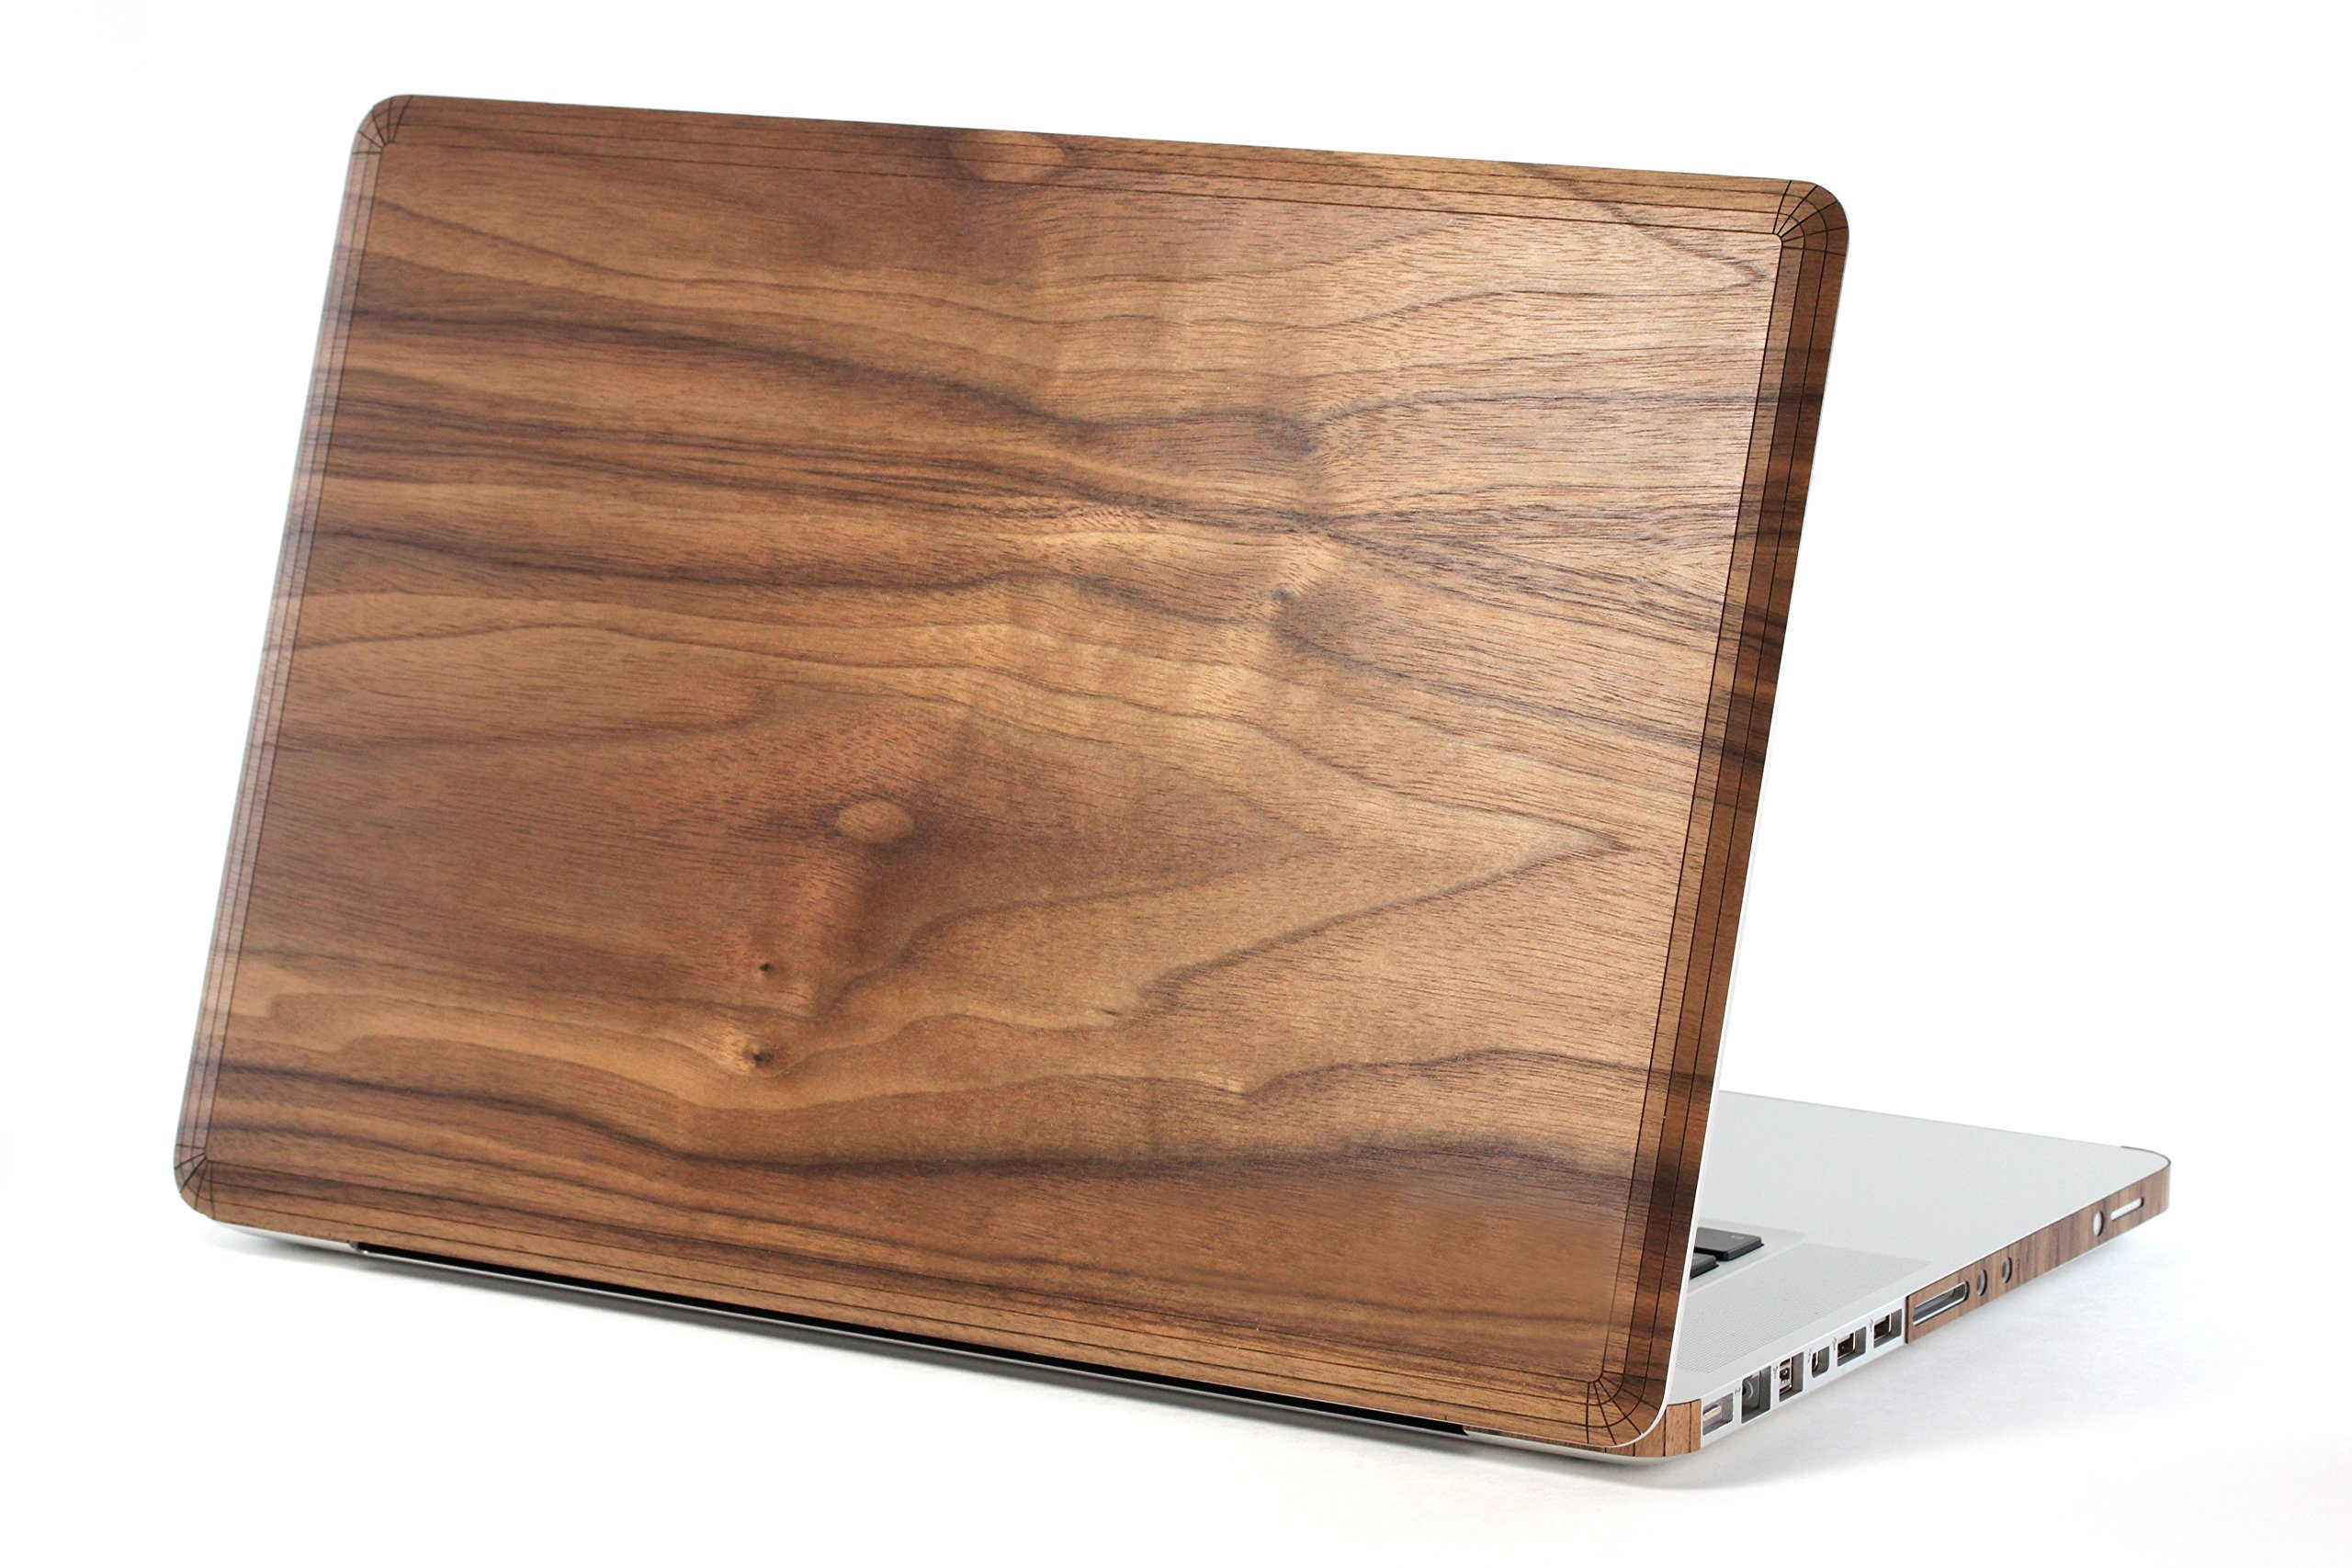 TOAST Real Wood Walnut Cover for MacBook Pro 15-Inch Non-Retina Version (MBPR-15N-PLA-01-COM) by Toast (Image #1)